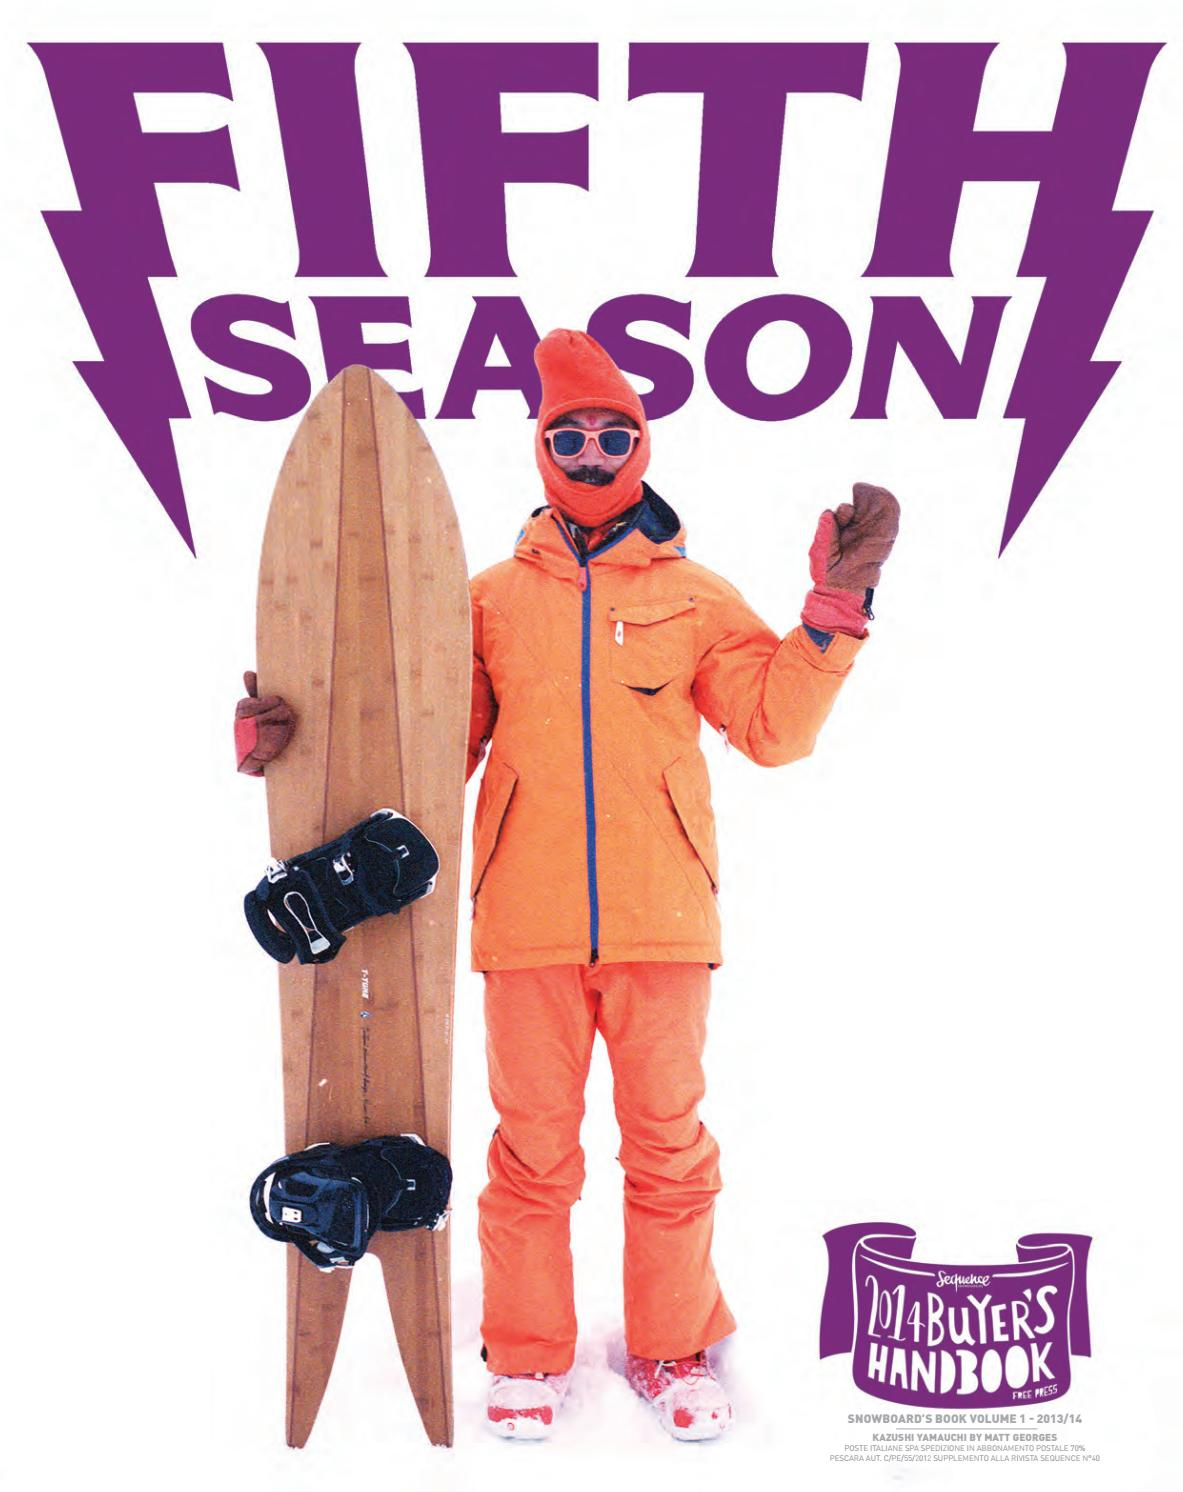 Fifth Season Buyer s Guide 2014 by Hand Communication - issuu 0510c85722fb